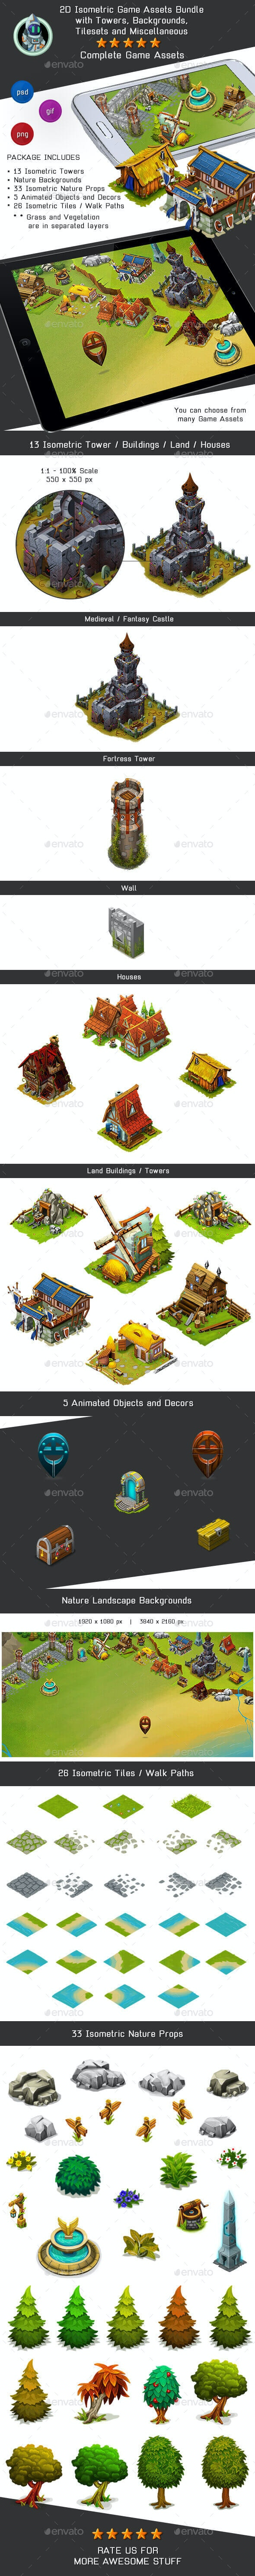 Isometric Game Kit 3 of 3 - Towers, Background, Tilesets & more - Game Kits Game Assets